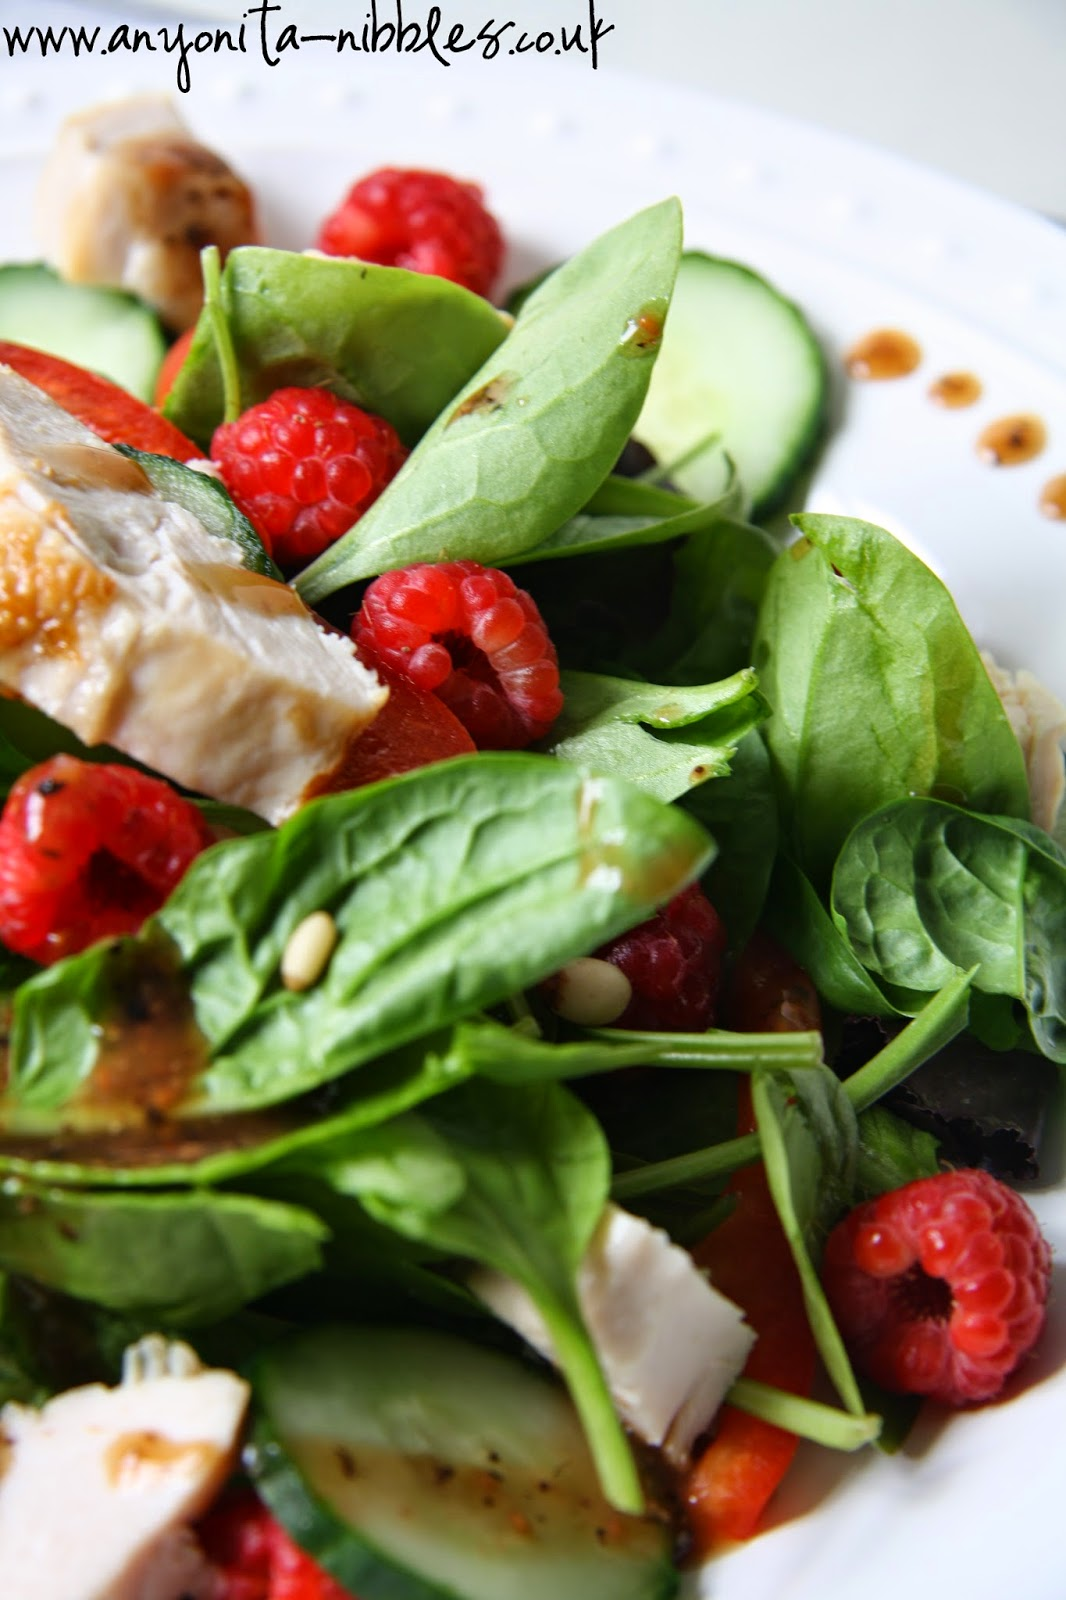 Raspberry and chicken salad with black pepper dressing from Anyonita-nibbles.co.uk